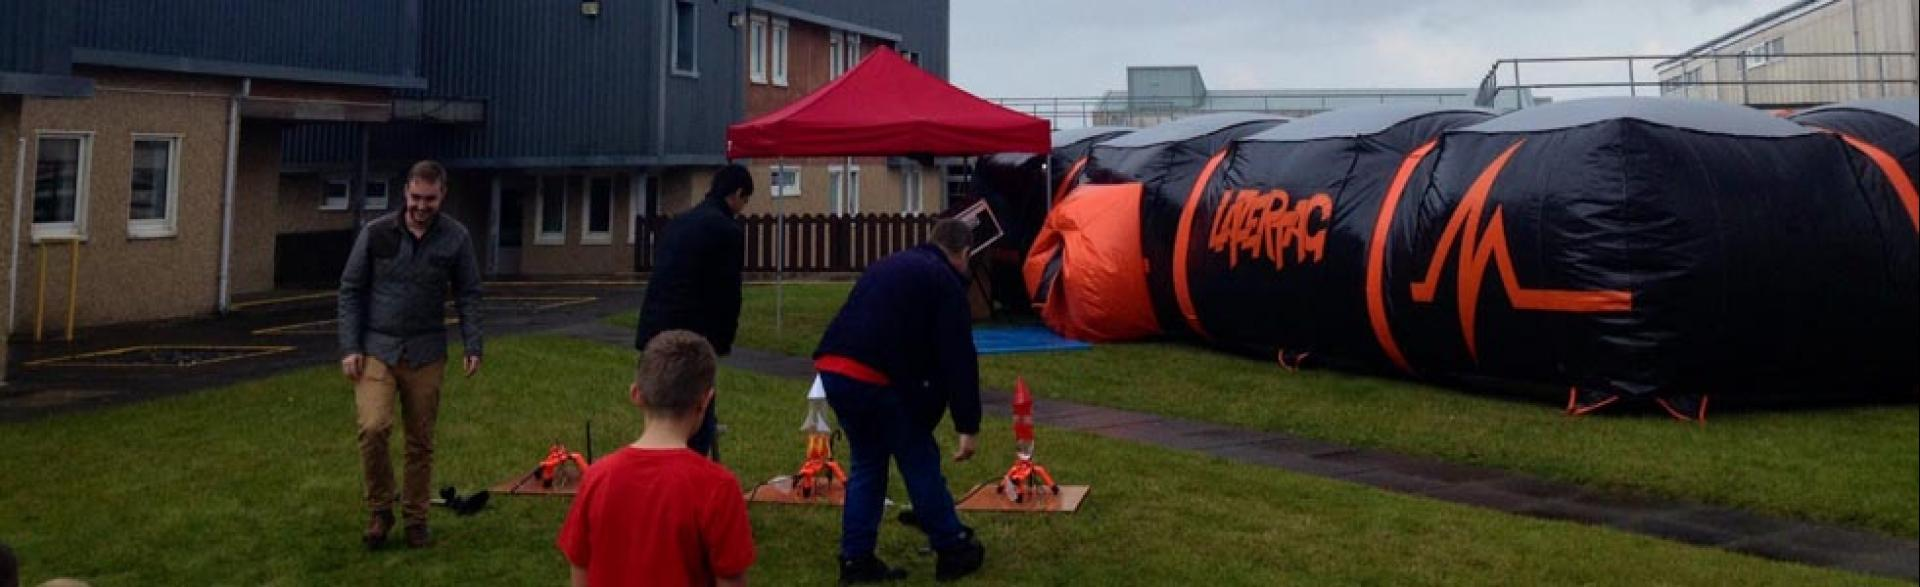 Corporate Fun Days, Benbecula, October 2014